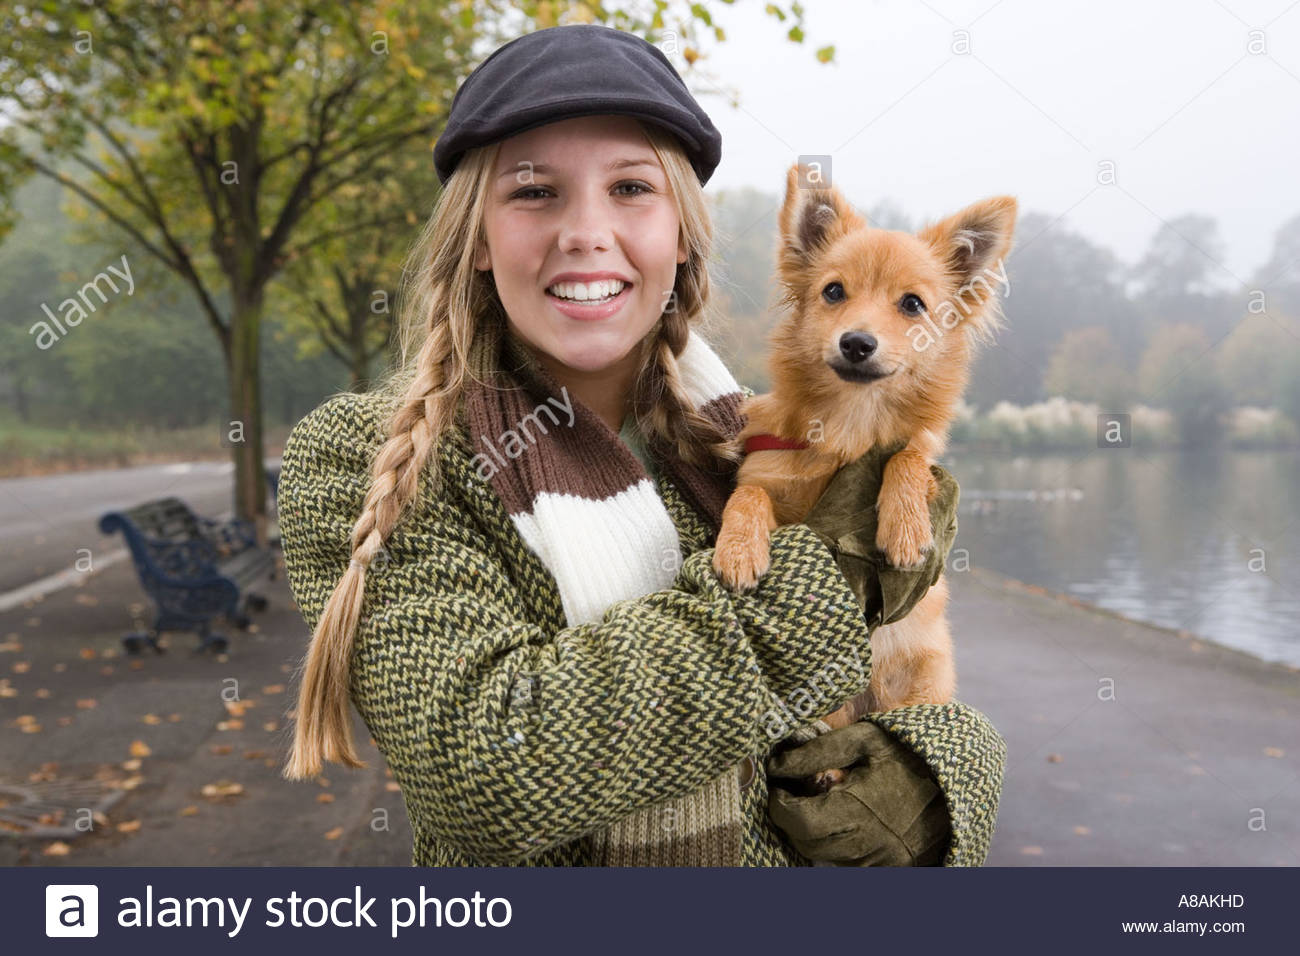 Young woman carrying dog in the park - Stock Image